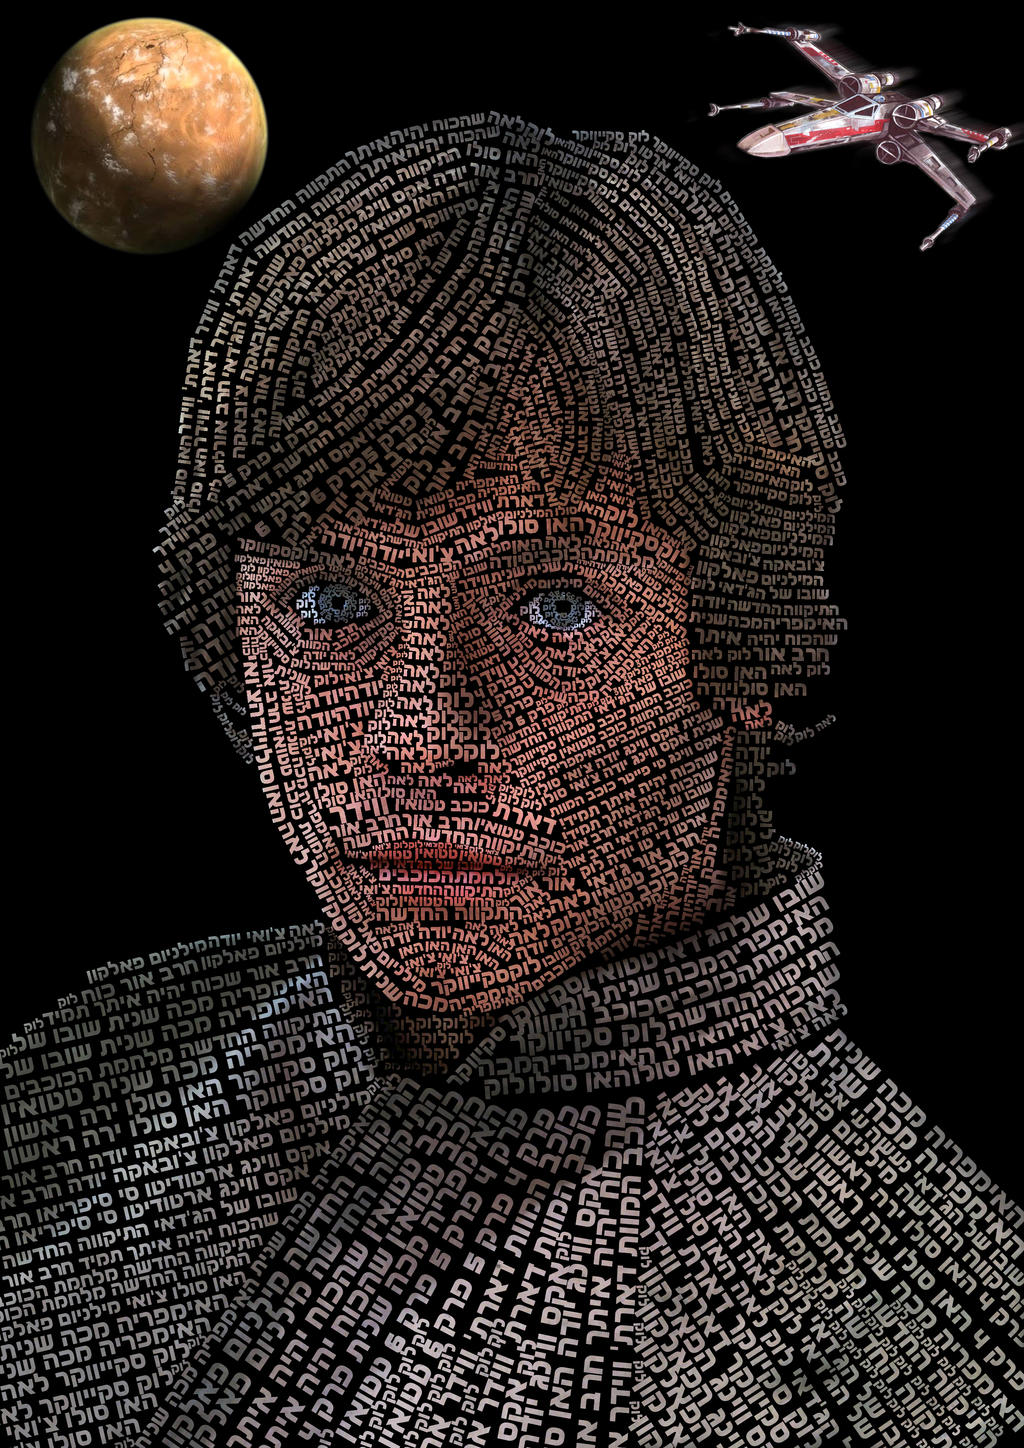 Luke Skywalker made of text by elic22 on DeviantArt